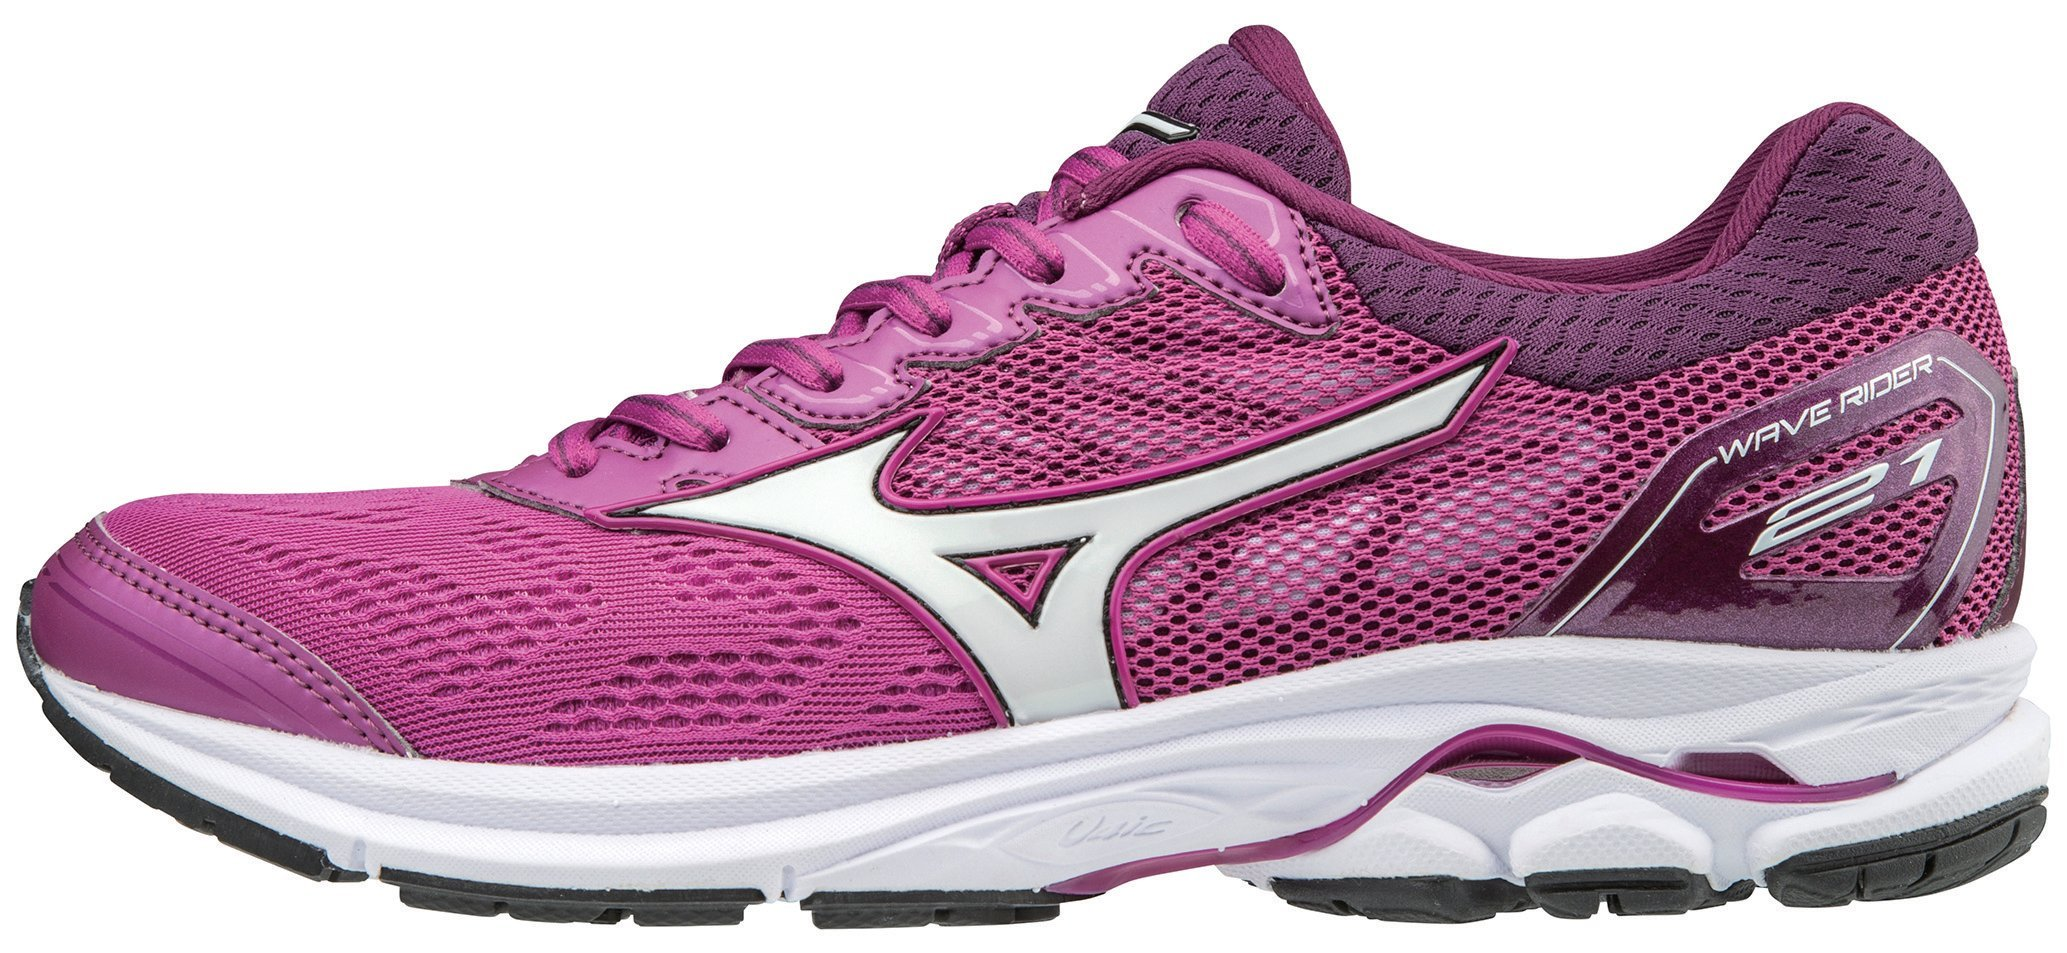 Mizuno Women's Wave Rider 21 Running Shoe Athletic Shoe, Clover/White, 7.5 B US